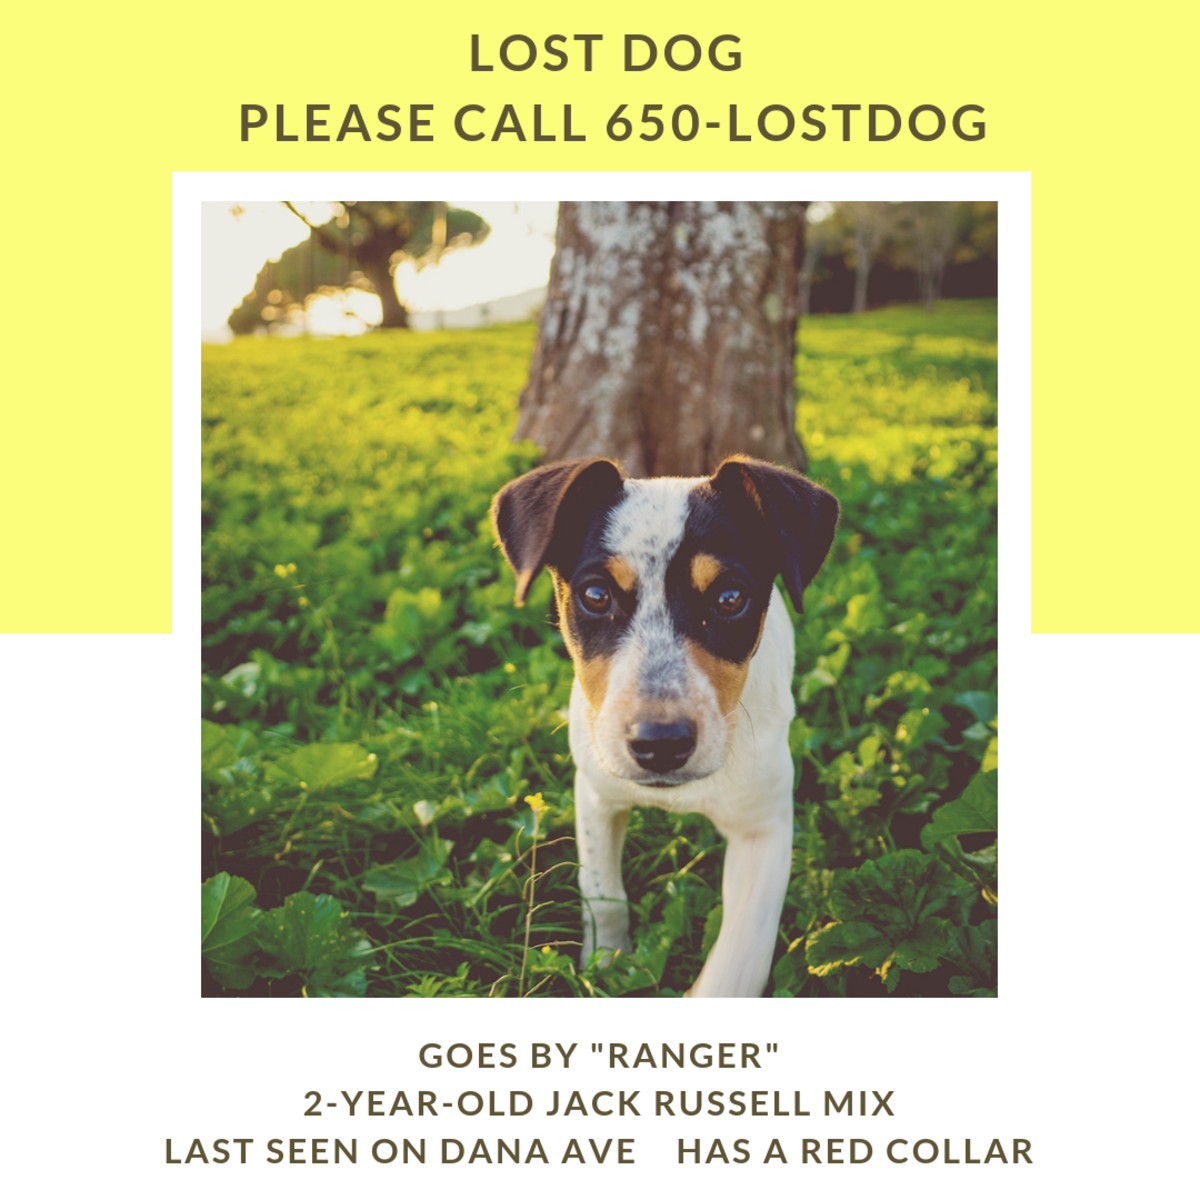 Tips for finding your lost pet as quickly as possible.